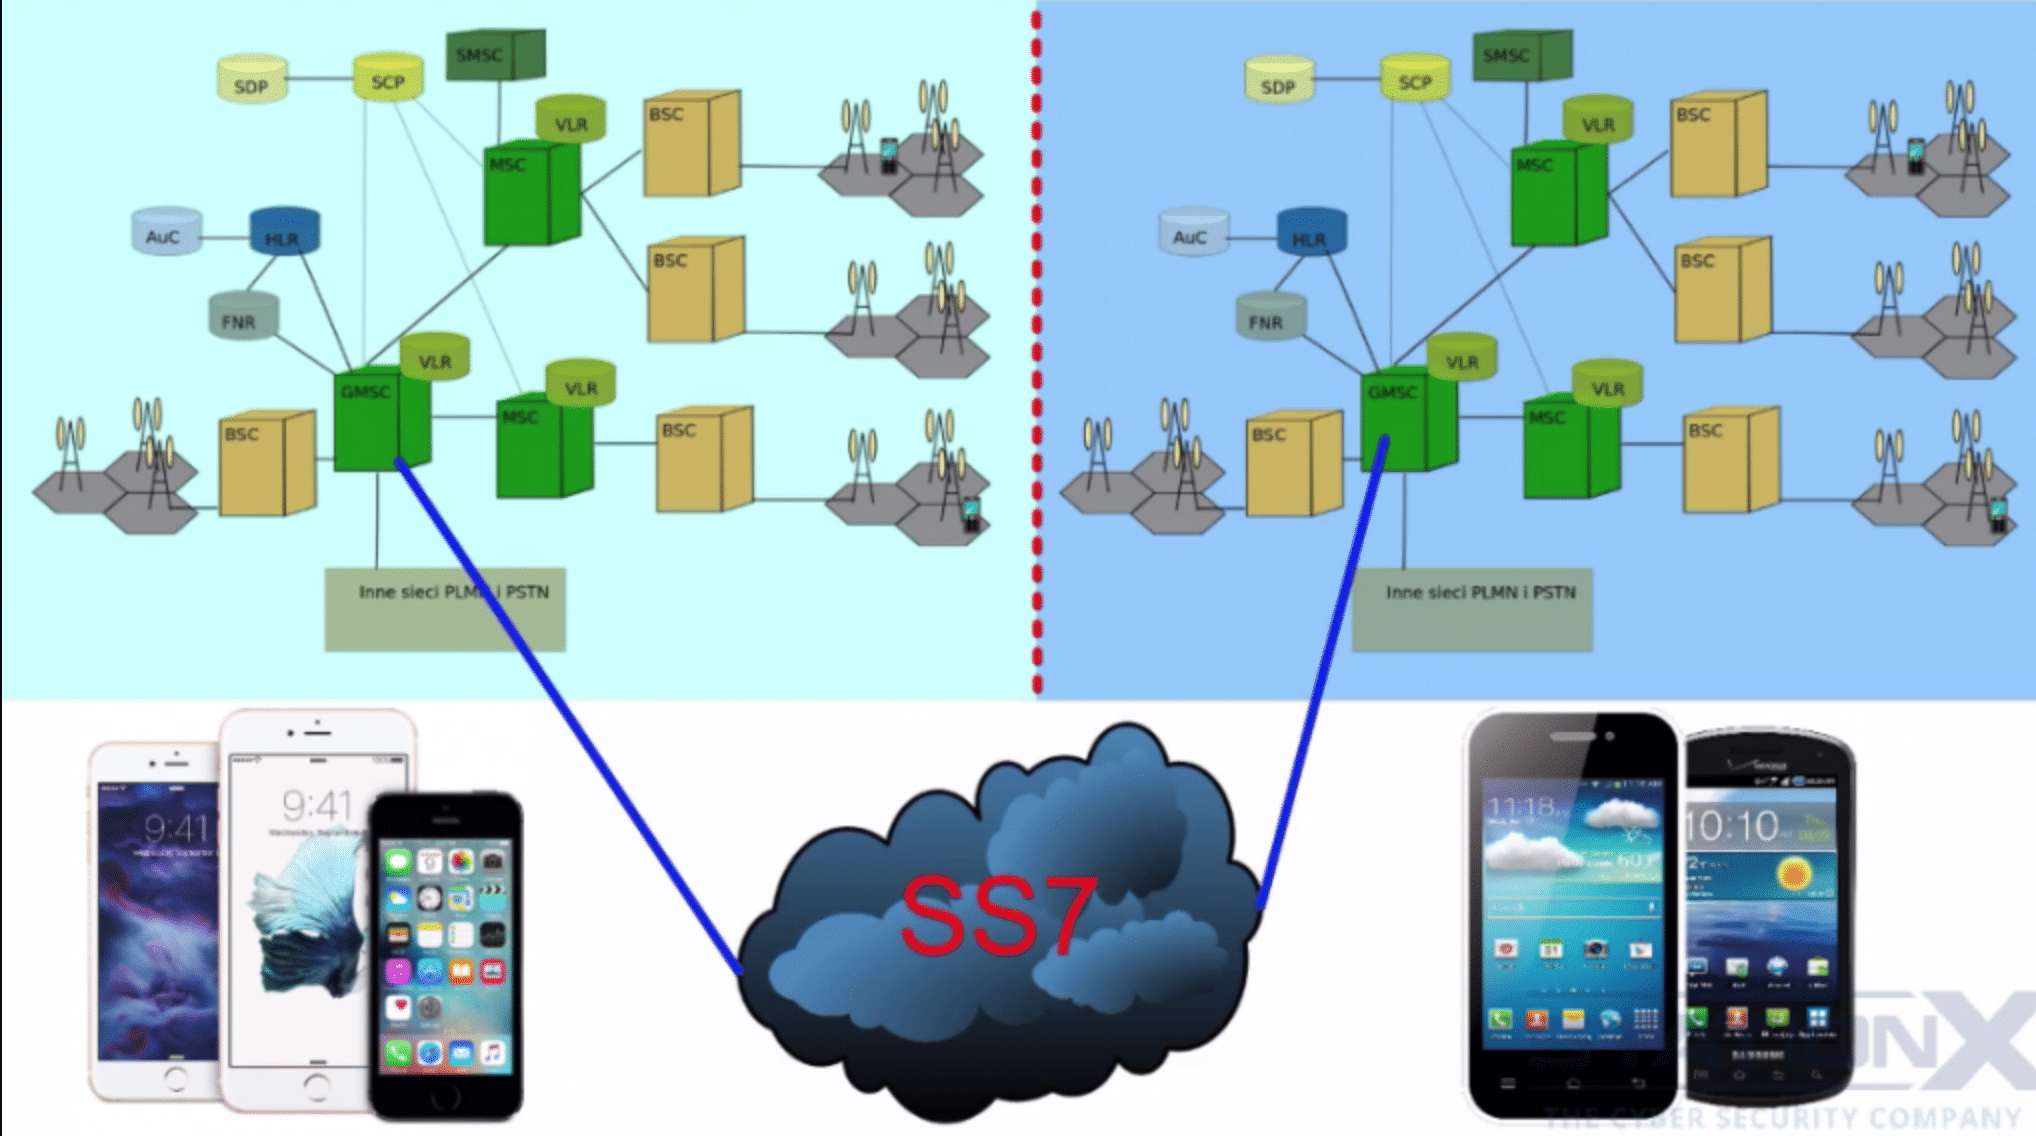 cellular networks and ss7 explained